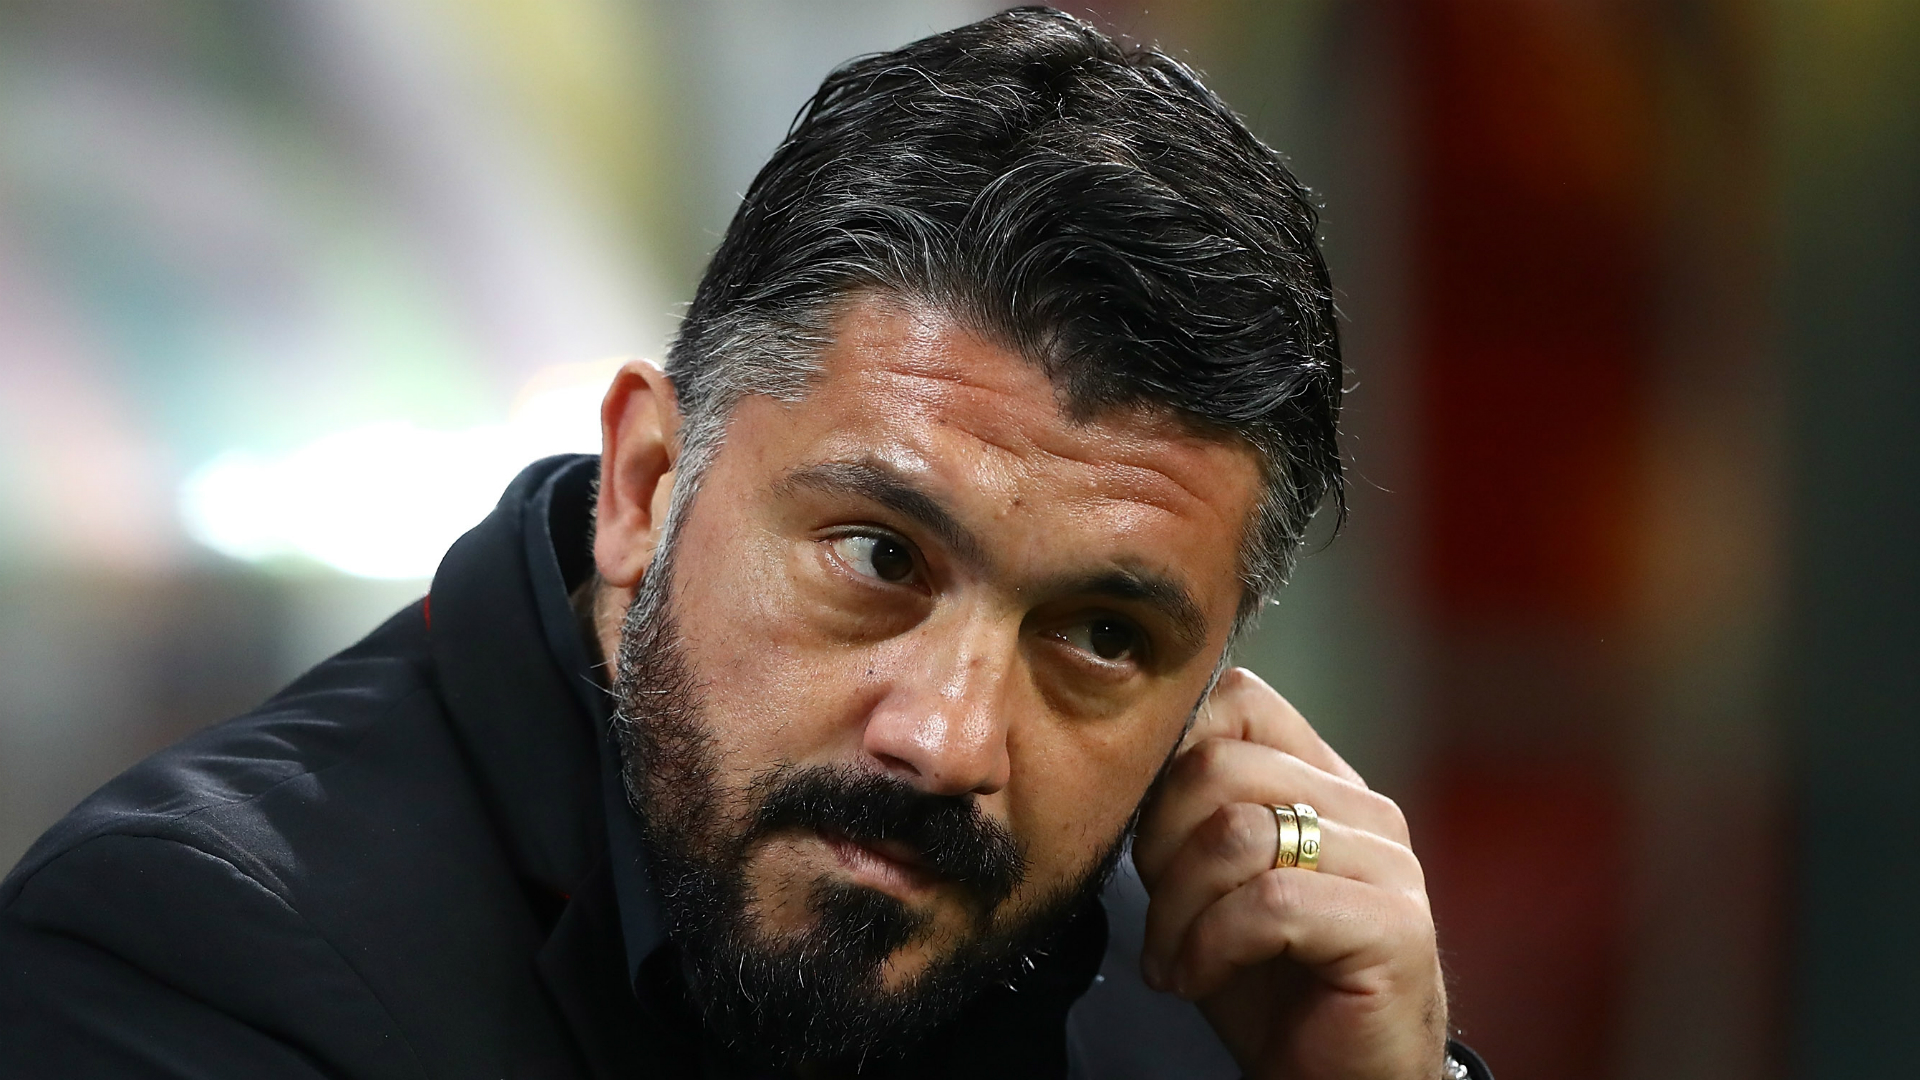 AC Milan have won just one of their last six matches and Gennaro Gattuso criticised their performance in a 1-1 draw at Parma.